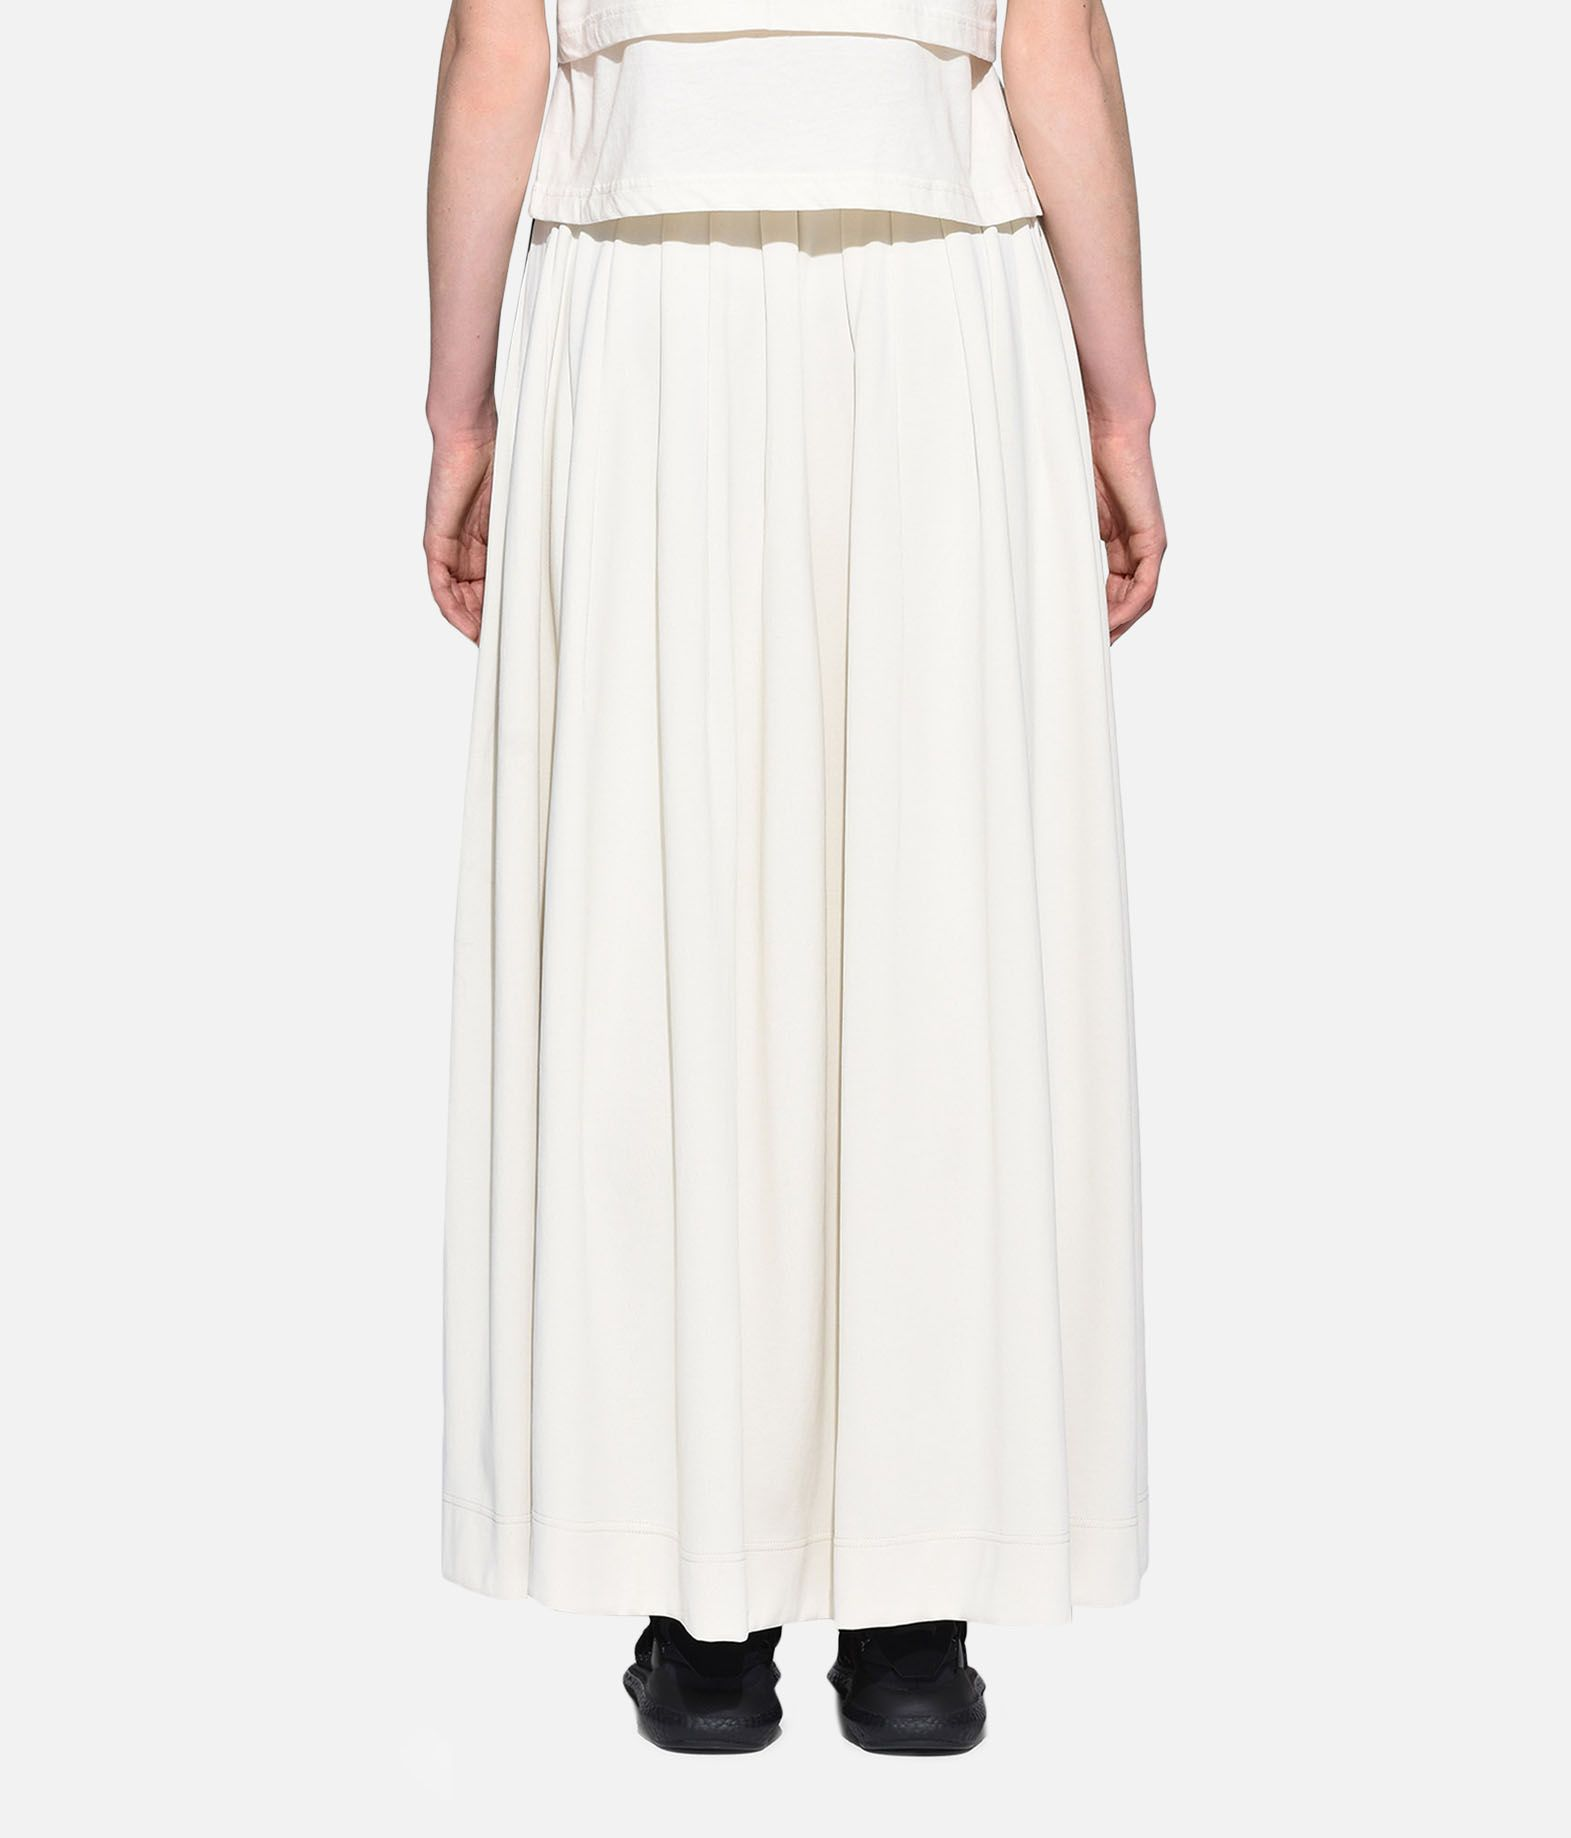 Y-3 Y-3 3-Stripes Selvedge Matte Track Skirt Gonna ginocchio Donna d